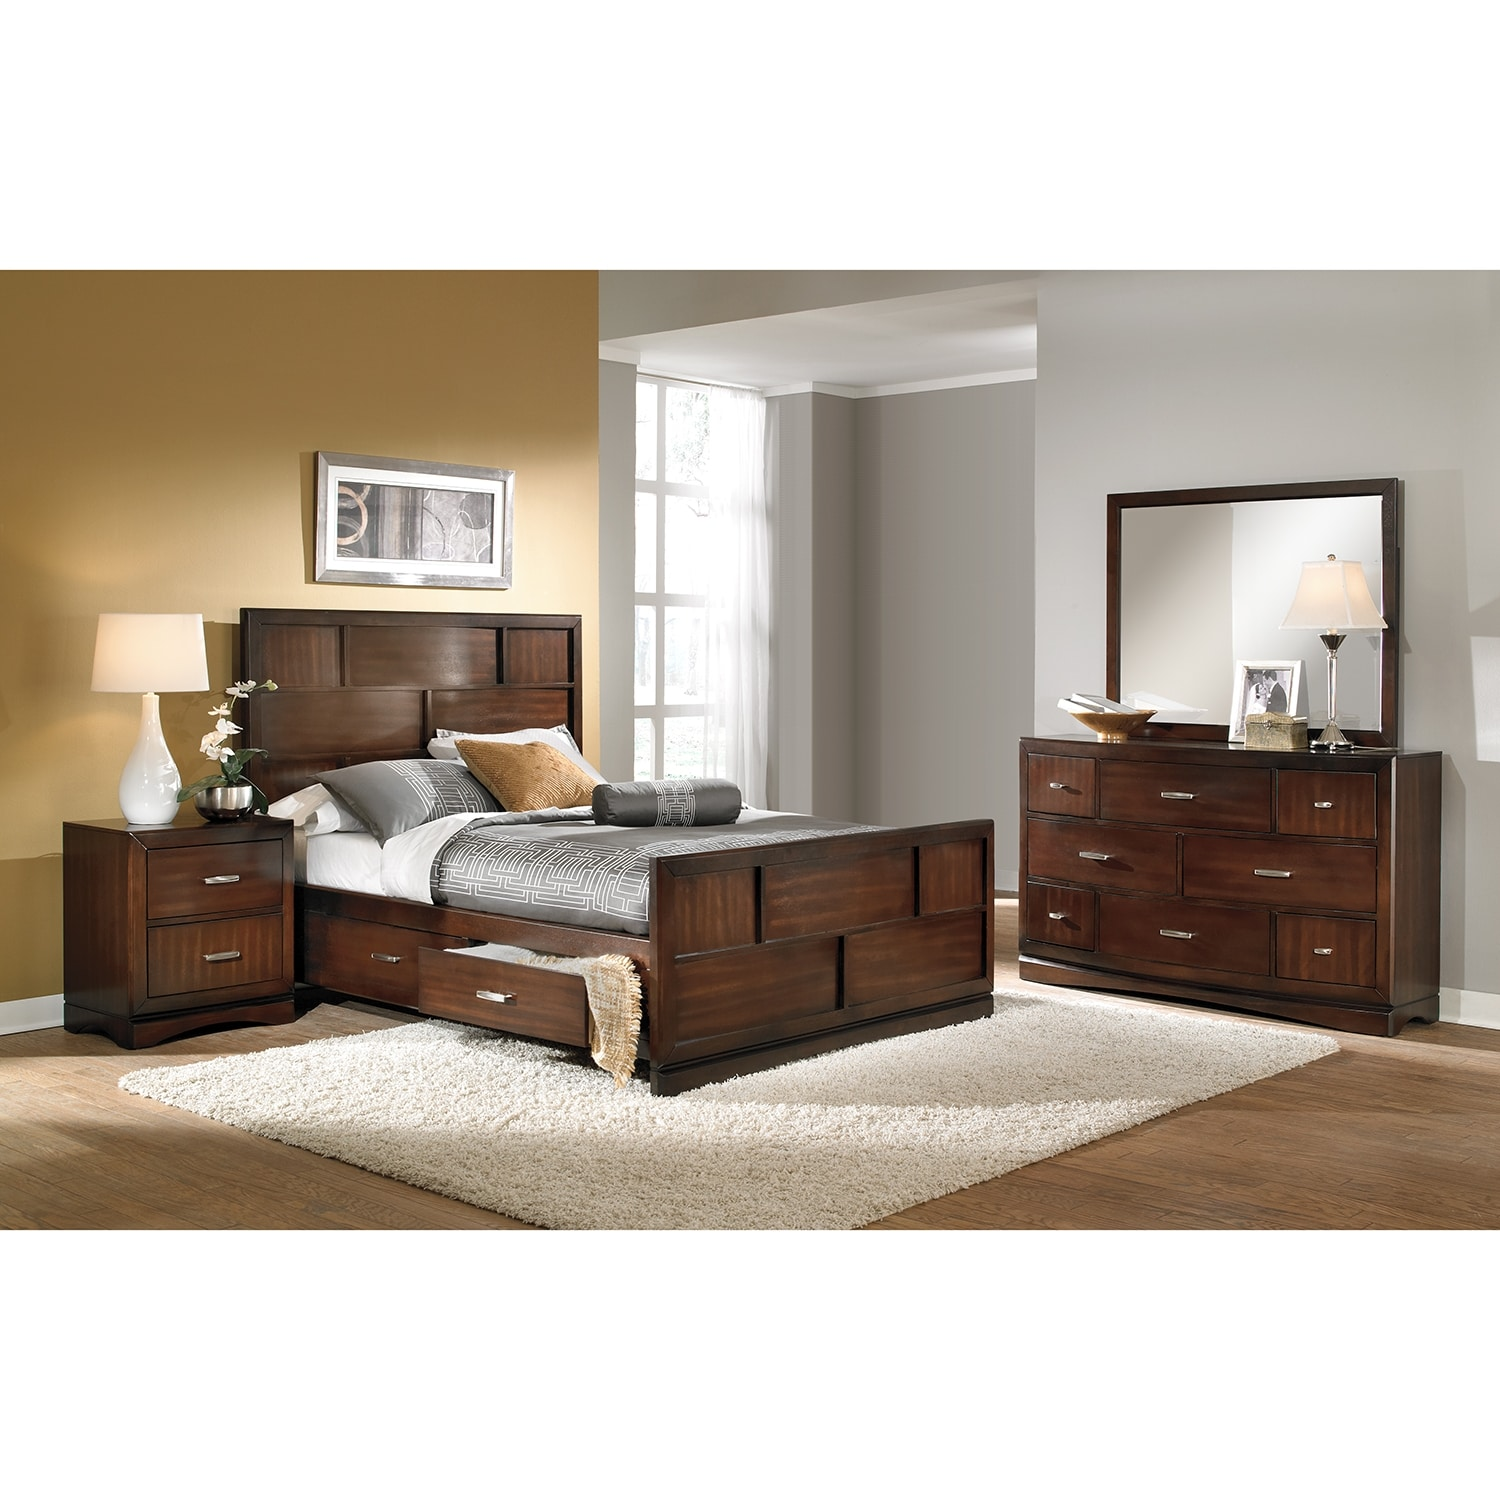 Toronto 5 Piece King Storage Bedroom Set: Toronto 6-Piece King Storage Bedroom Set